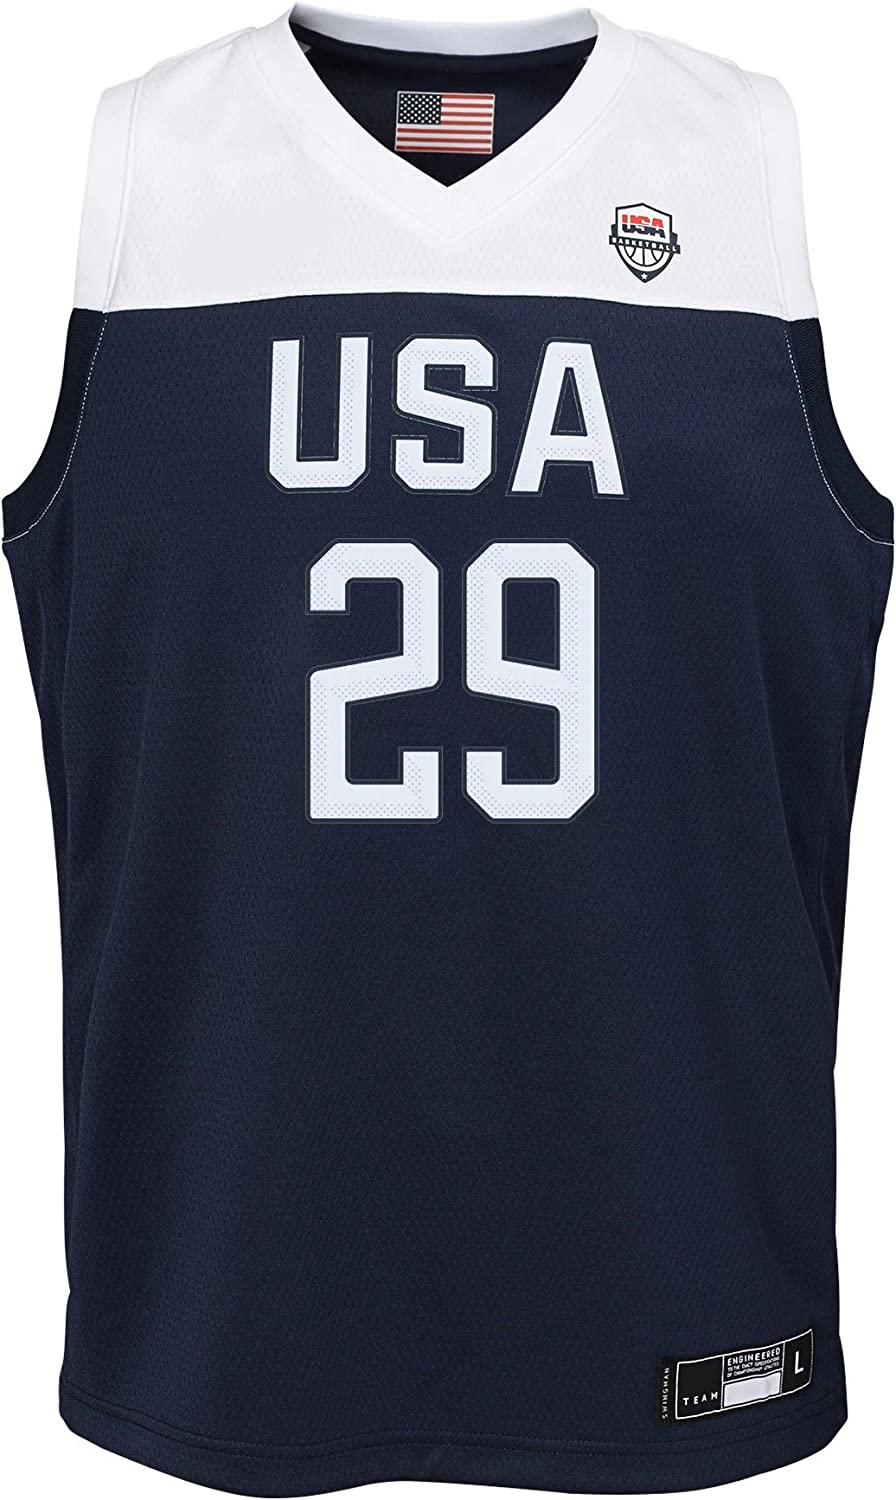 Outerstuff Team USA Basketball Paul George #29 Road Navy Swingman Jersey Youth Sizes